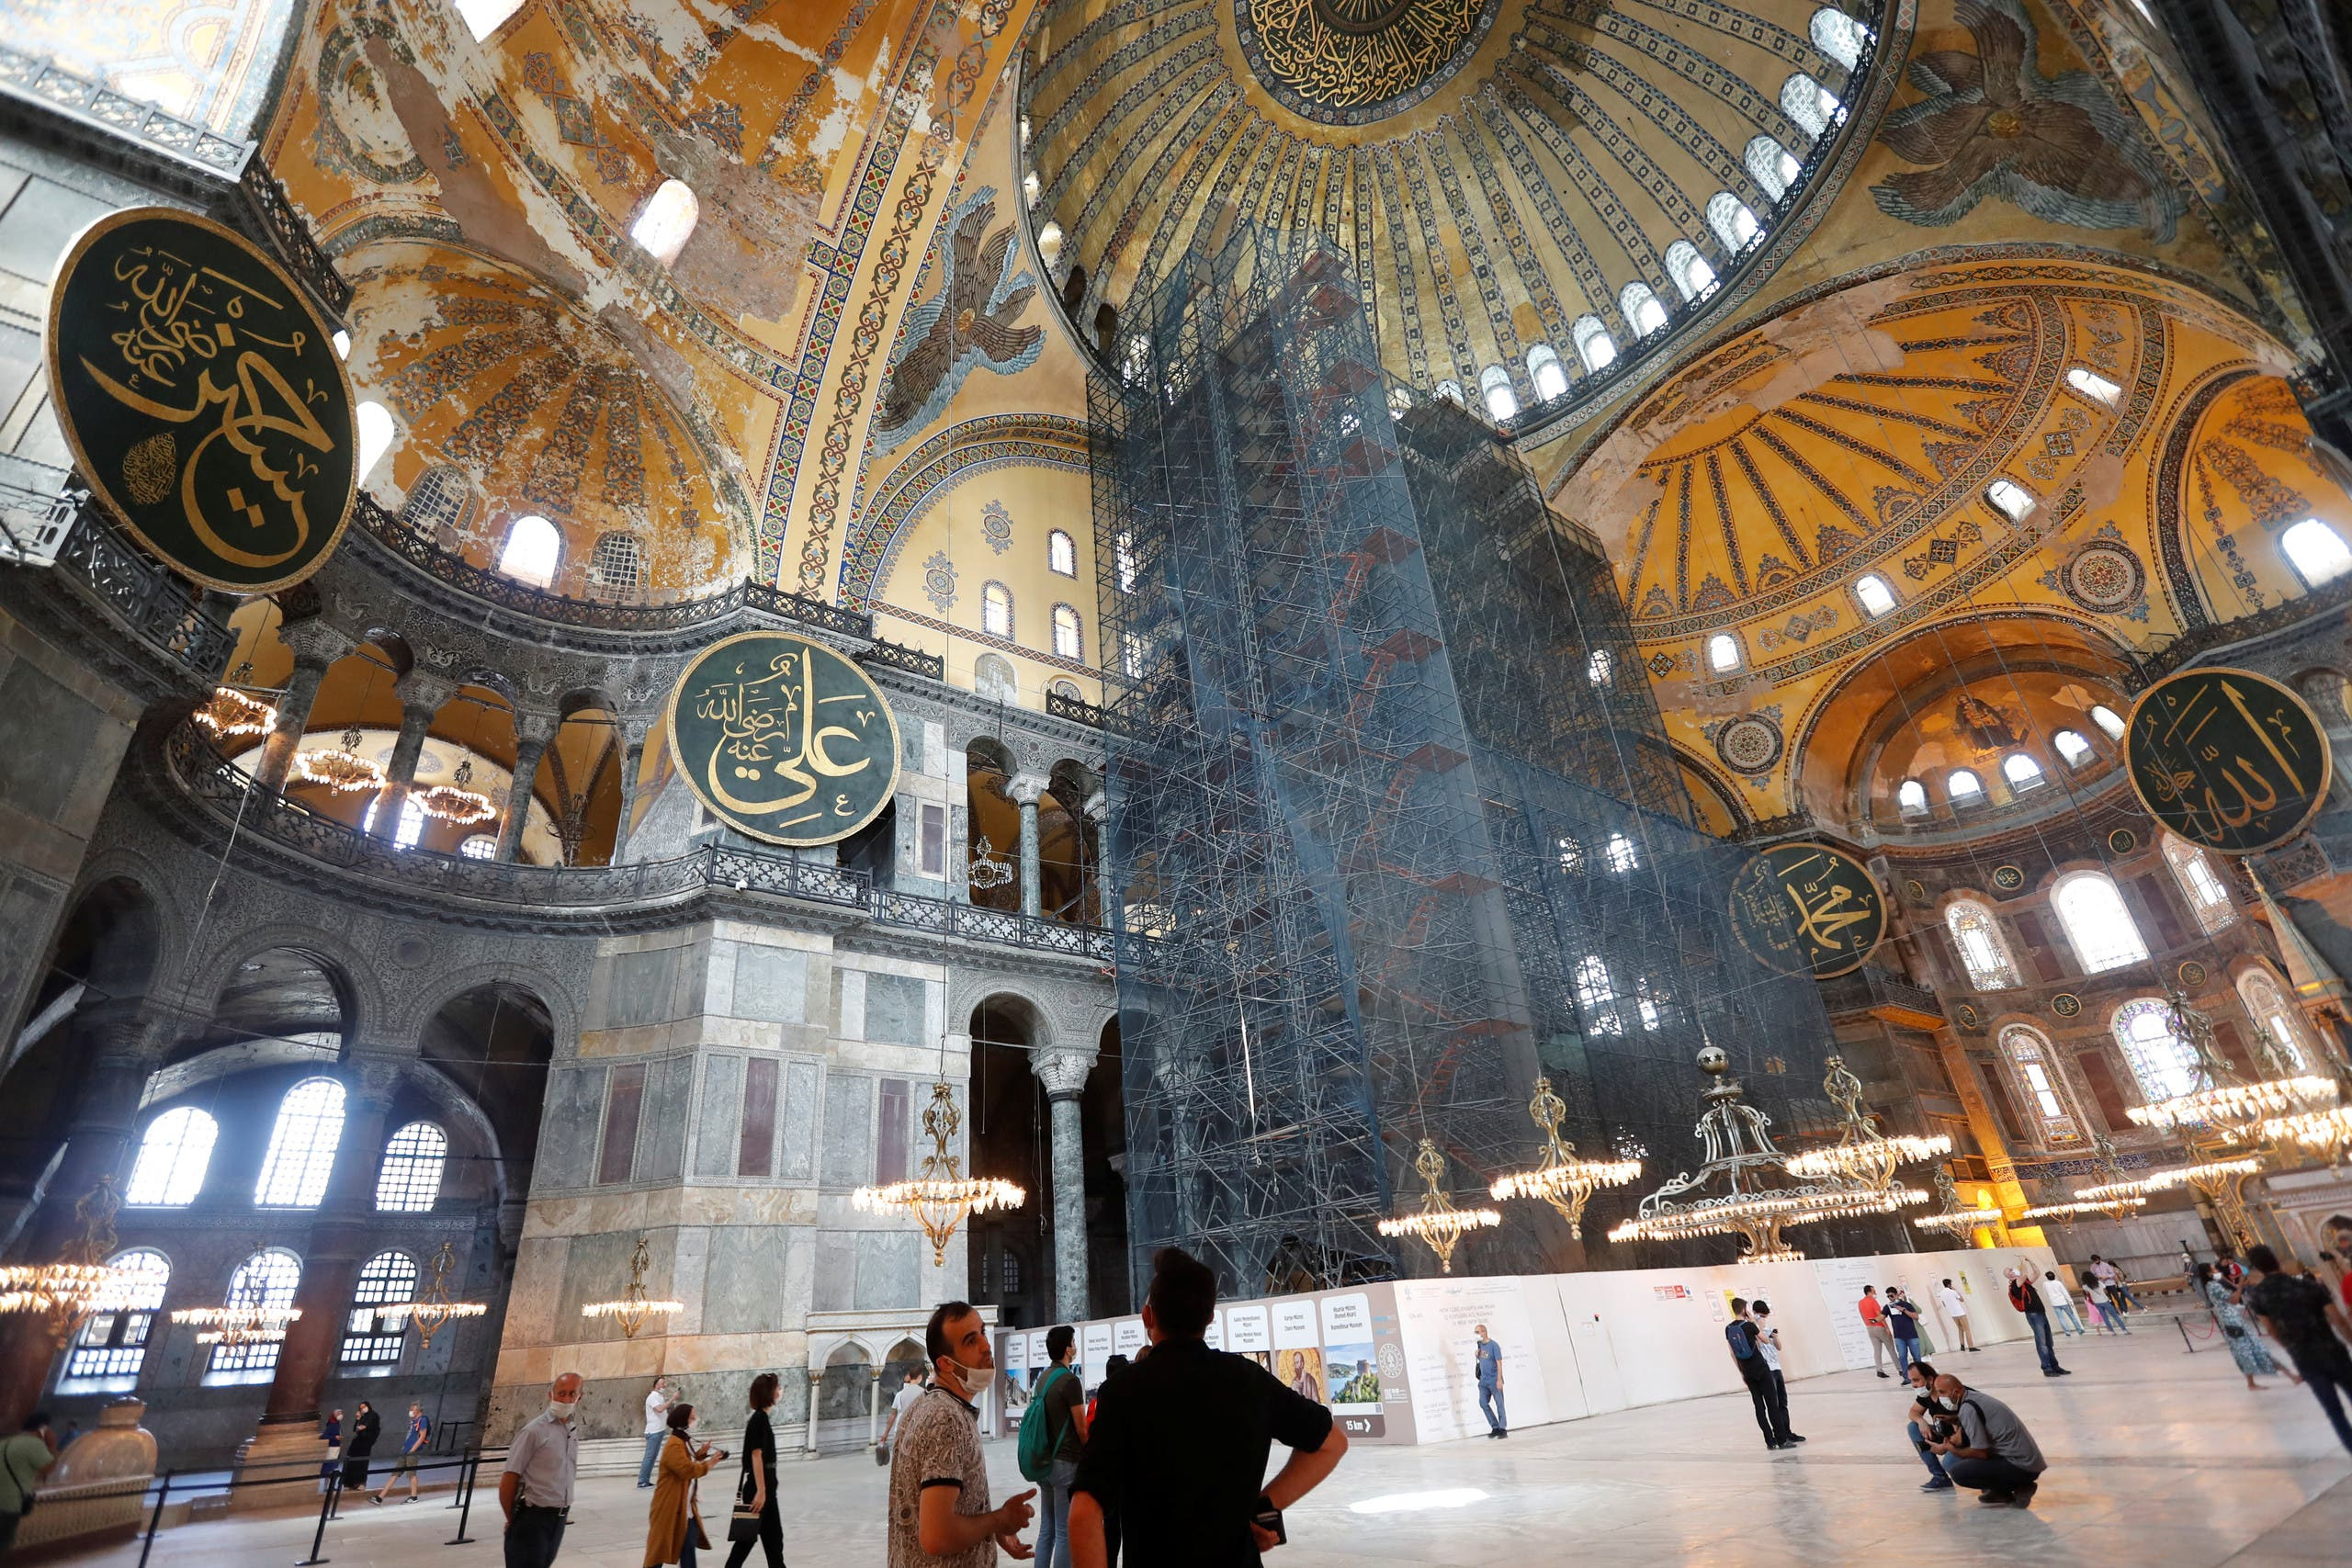 People visit the Hagia Sophia, a UNESCO World Heritage Site, in Istanbul, Turkey, July 10, 2020. (Reuters)